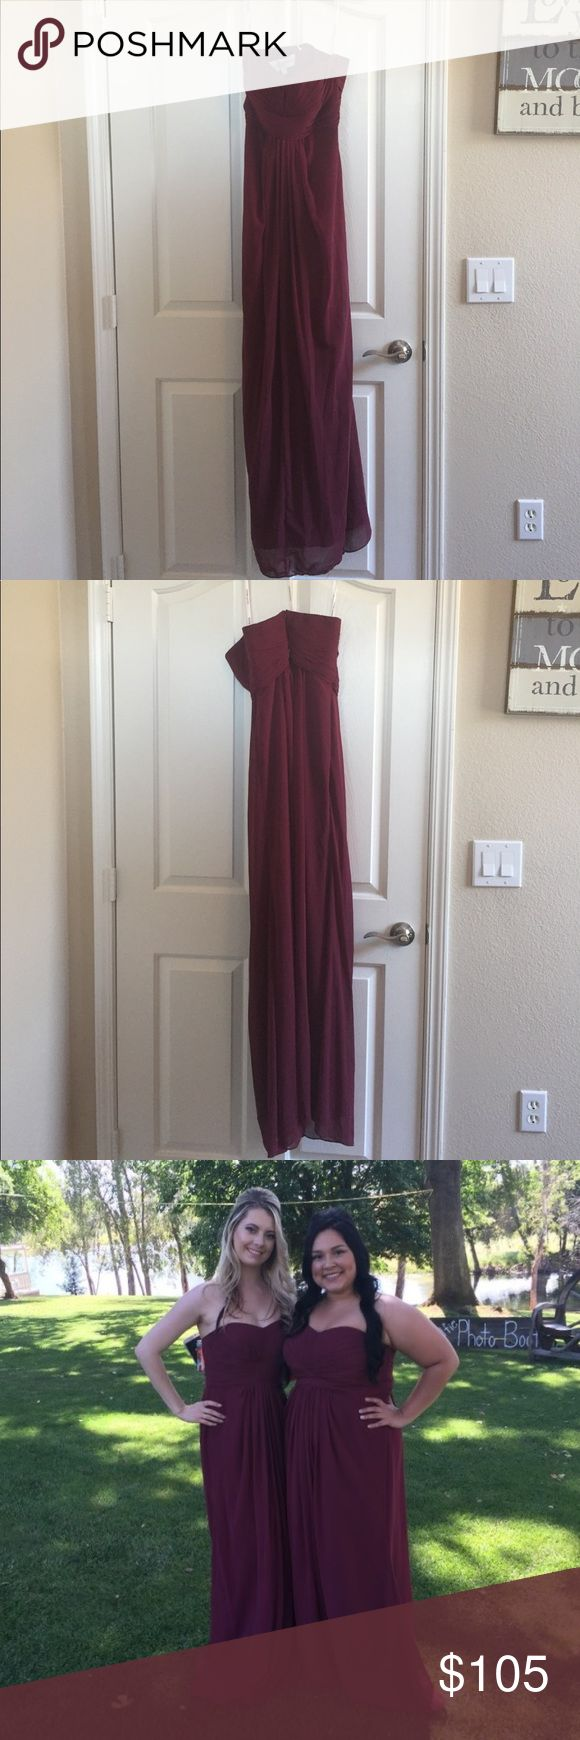 """David's Bridal bridesmaid dress Would be great for Prom or any special occasion! Worn once, in picture shown to a wedding. I'm the blonde in the pic and I'm 5'5"""". Size 4 fit me perfect. Perfect condition. David's Bridal Dresses Wedding"""